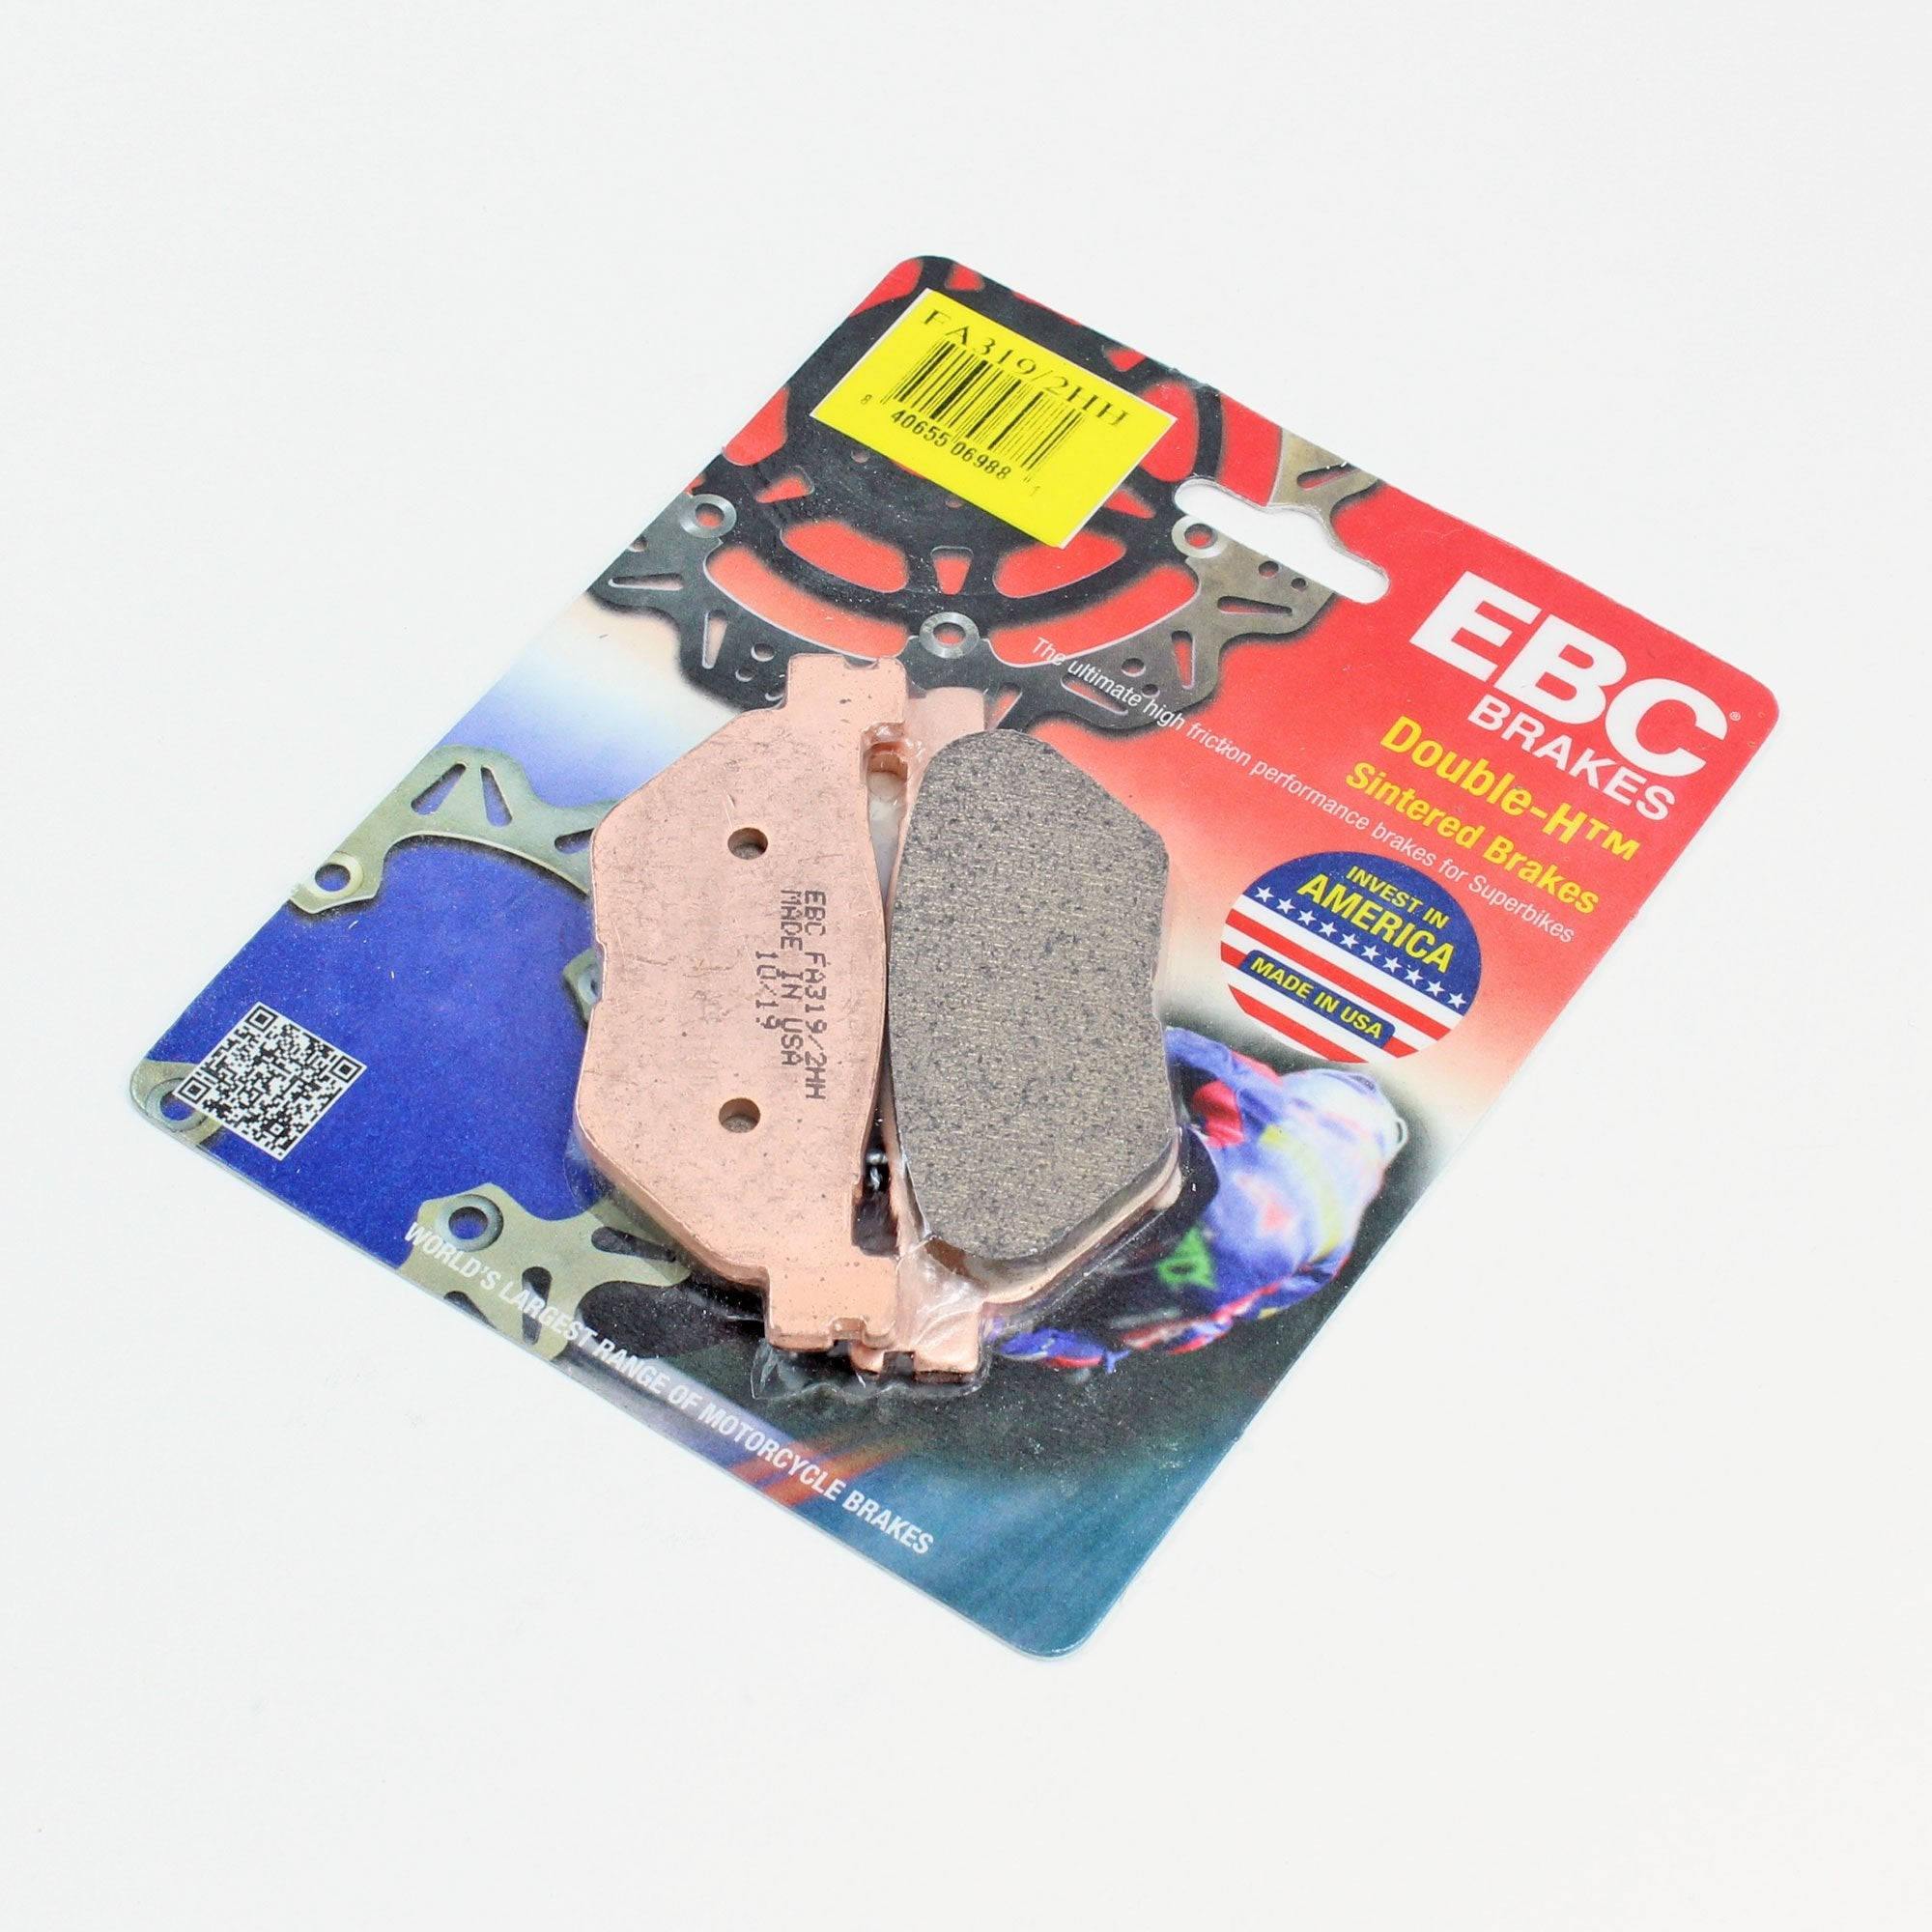 Brakecrafters Brake Pads 2009 - 2016 YAMAHA VMX1700 V-MAX - REAR EBC HH RATED SINTERED BRAKE PADS - 1 PAIR